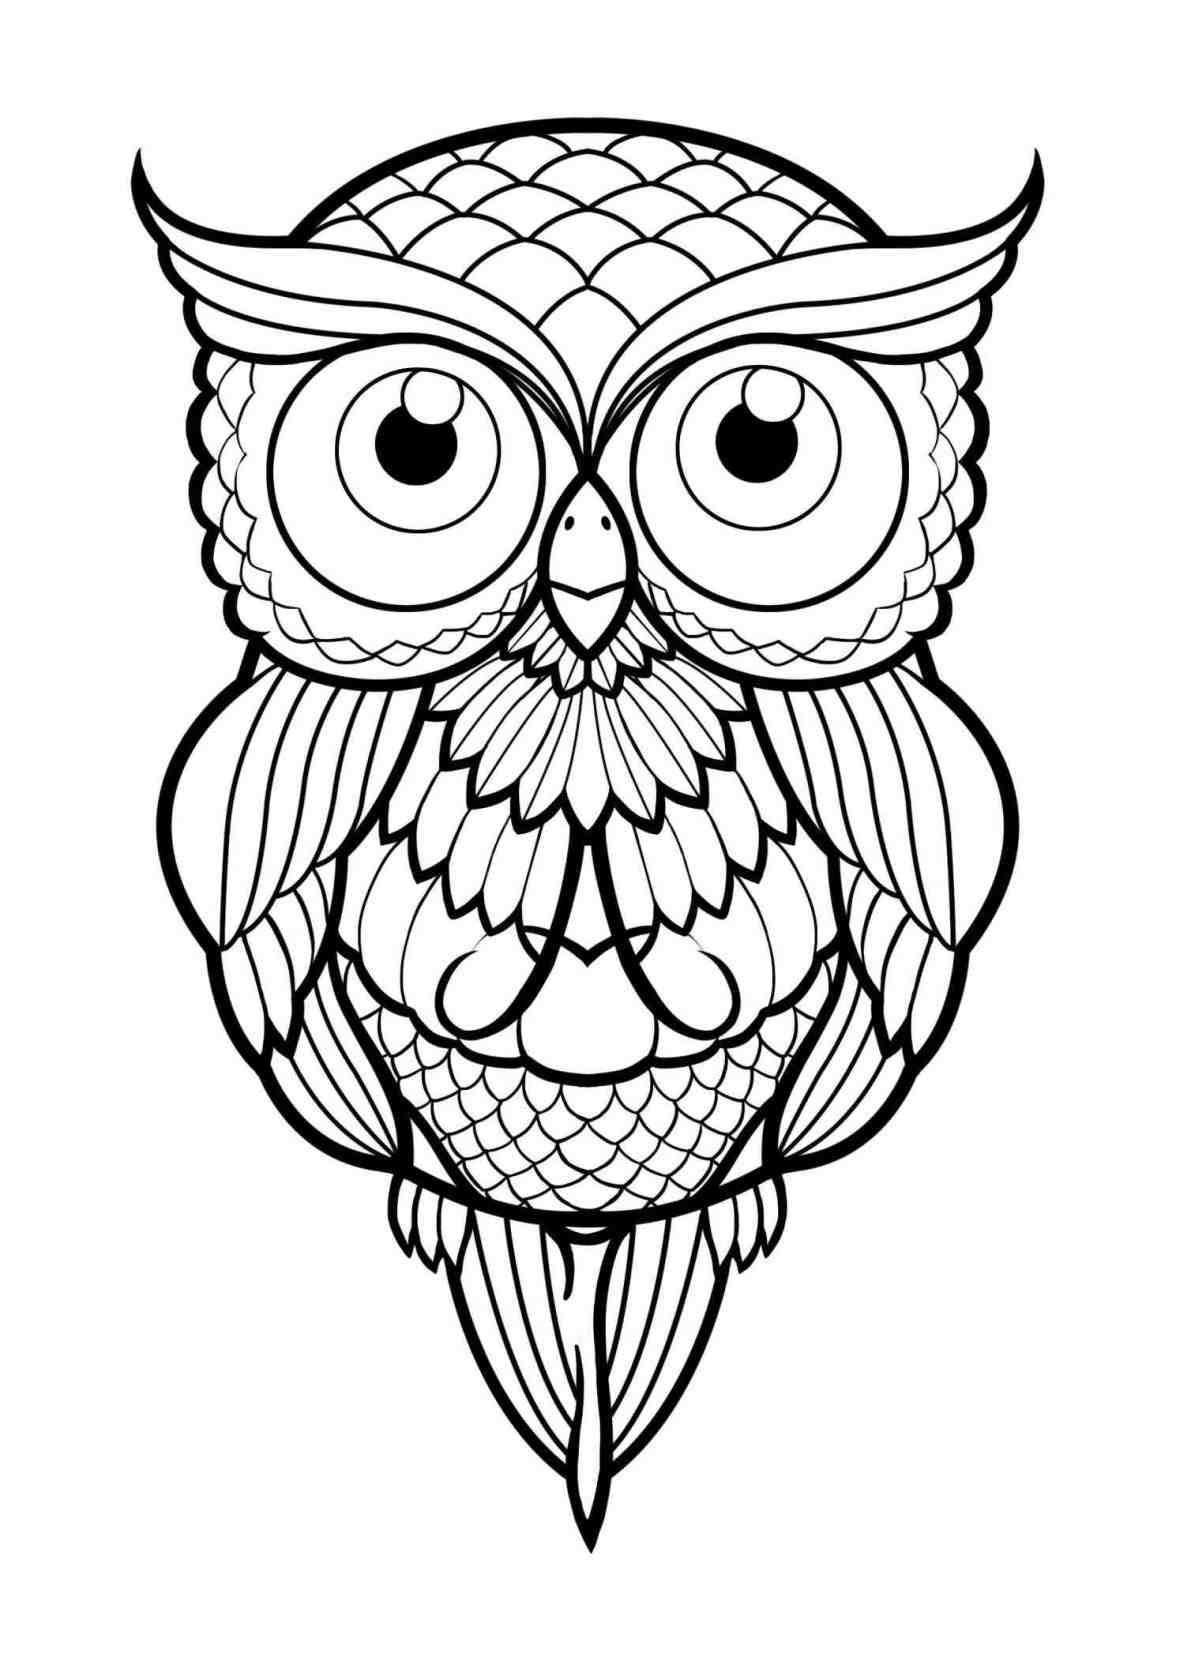 Pin by Barbara Brantley on coloring pages (With images ...